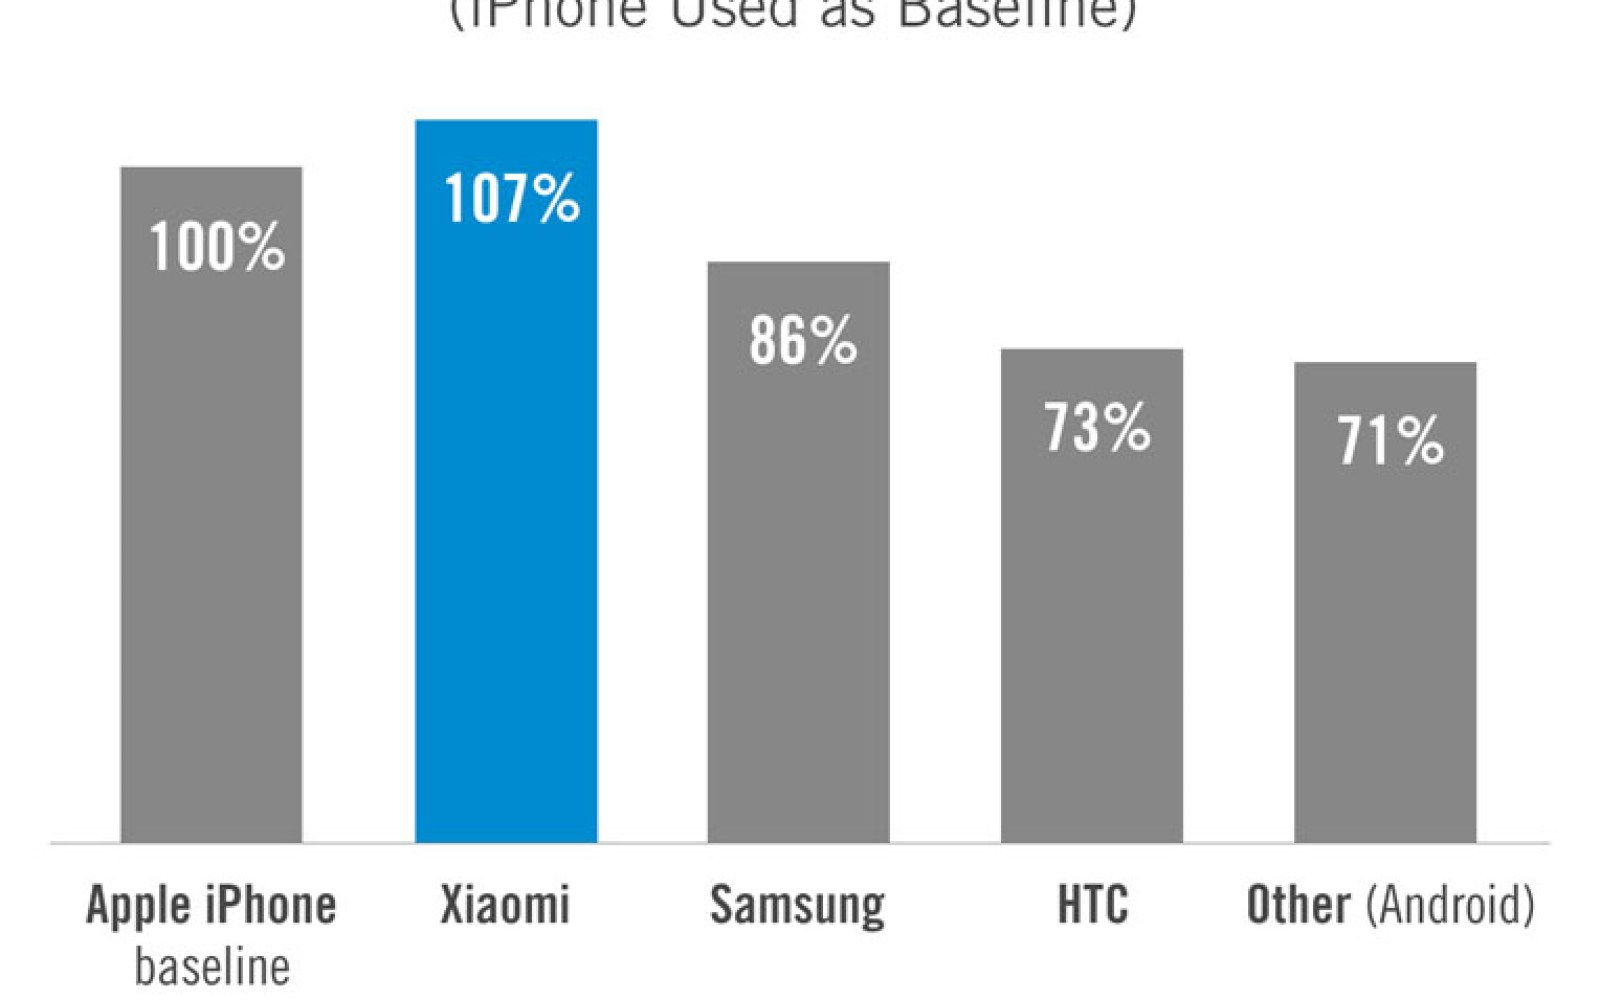 'Apple of China' brand Xiaomi pips iPhone in latest Chinese app usage stats